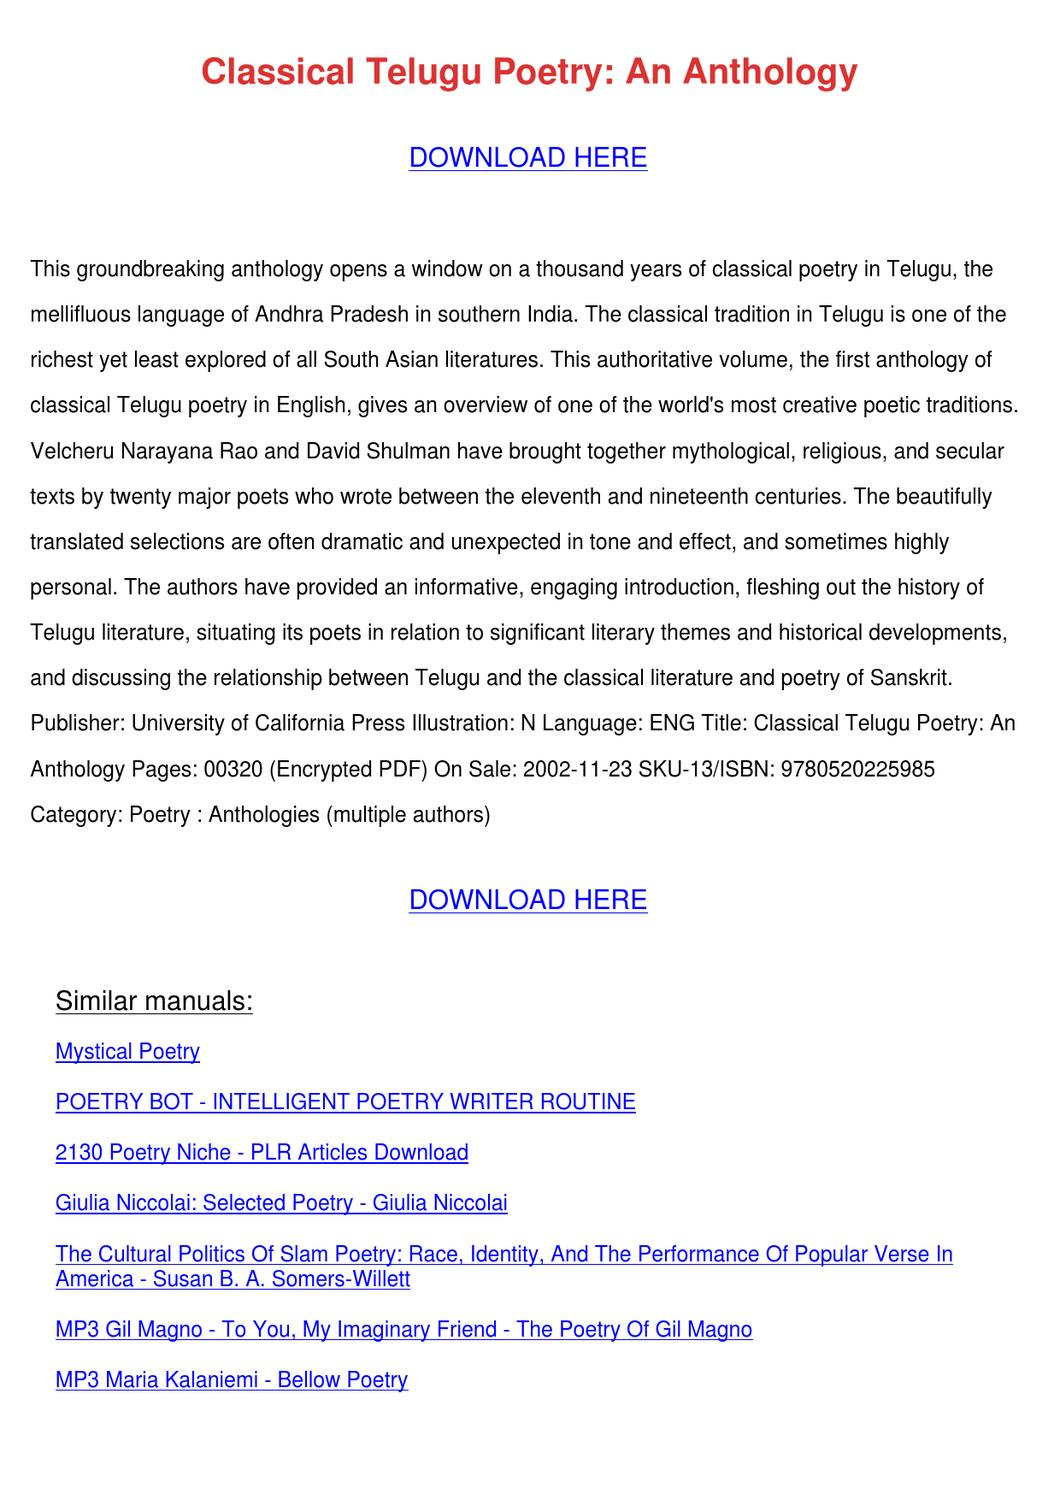 Classical Telugu Poetry An Anthology by Elinore Modafferi